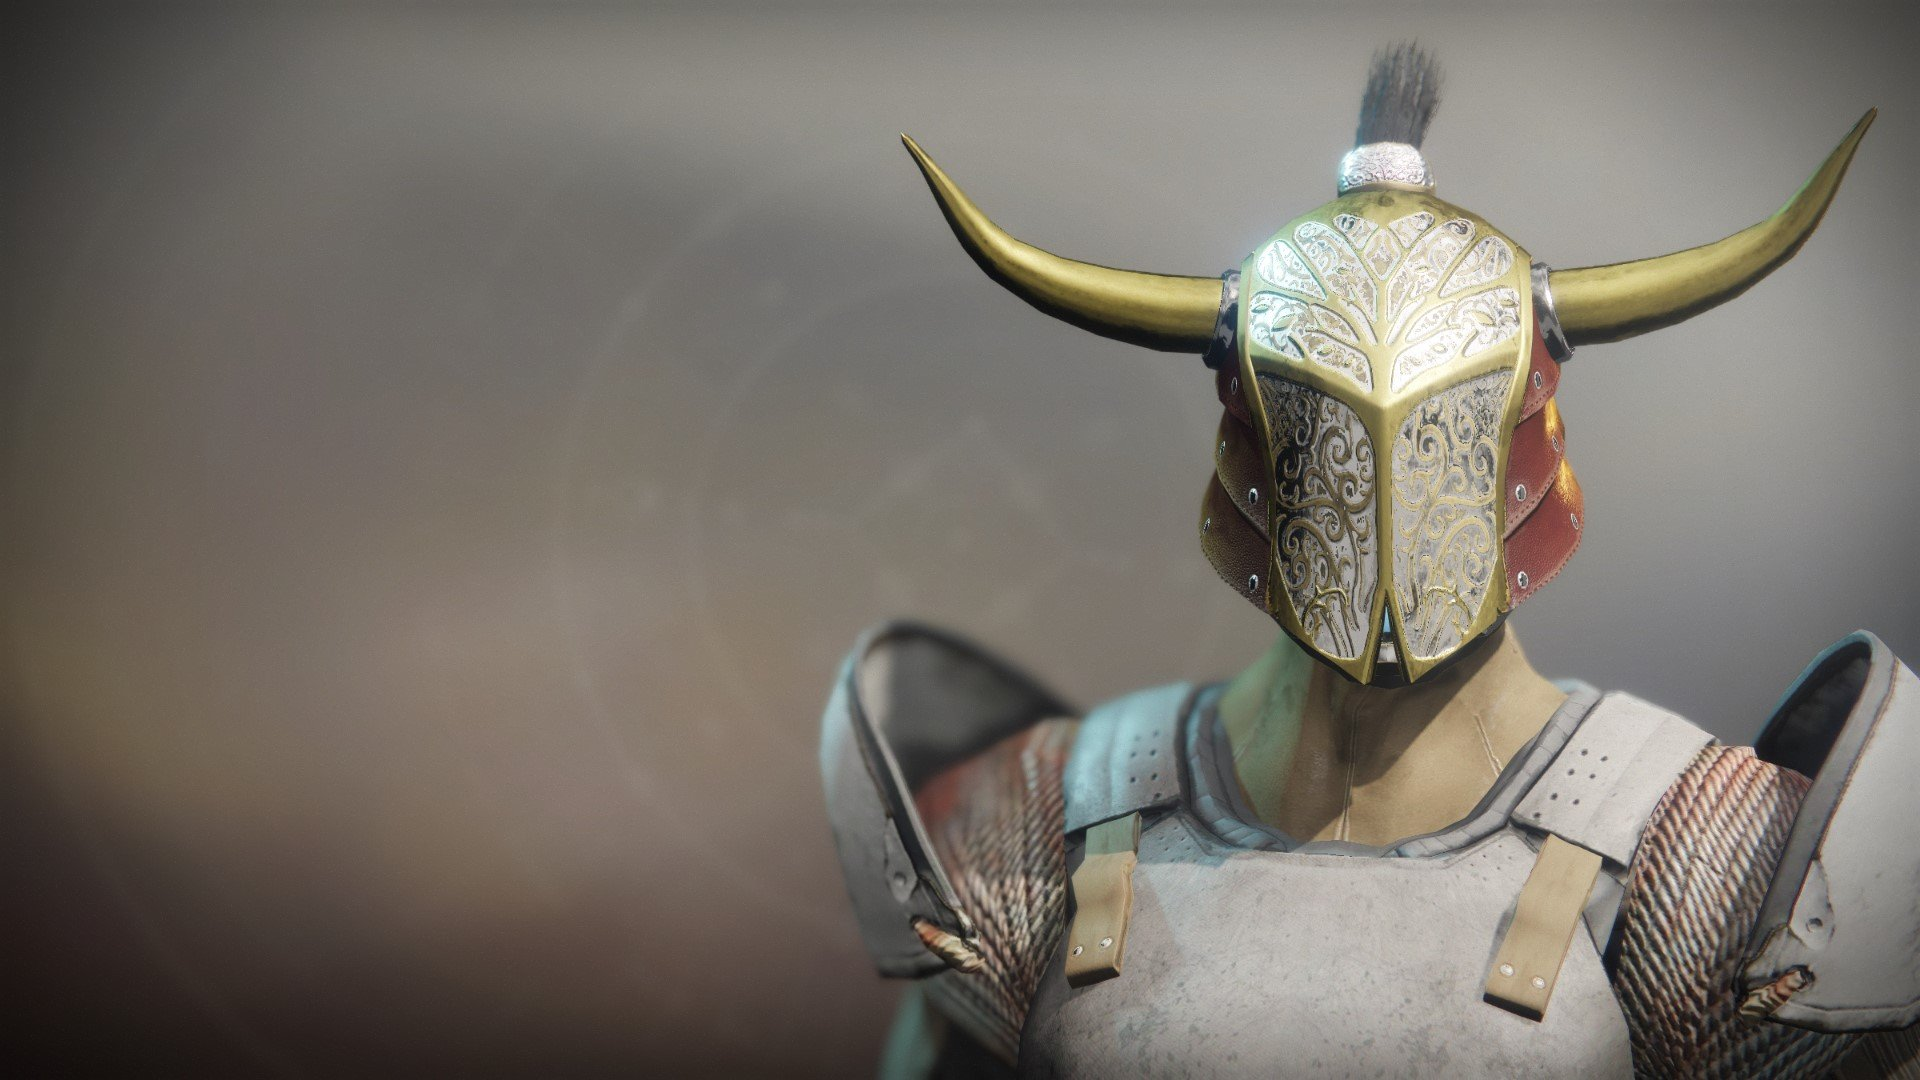 An in-game render of the Iron Truage Helm.